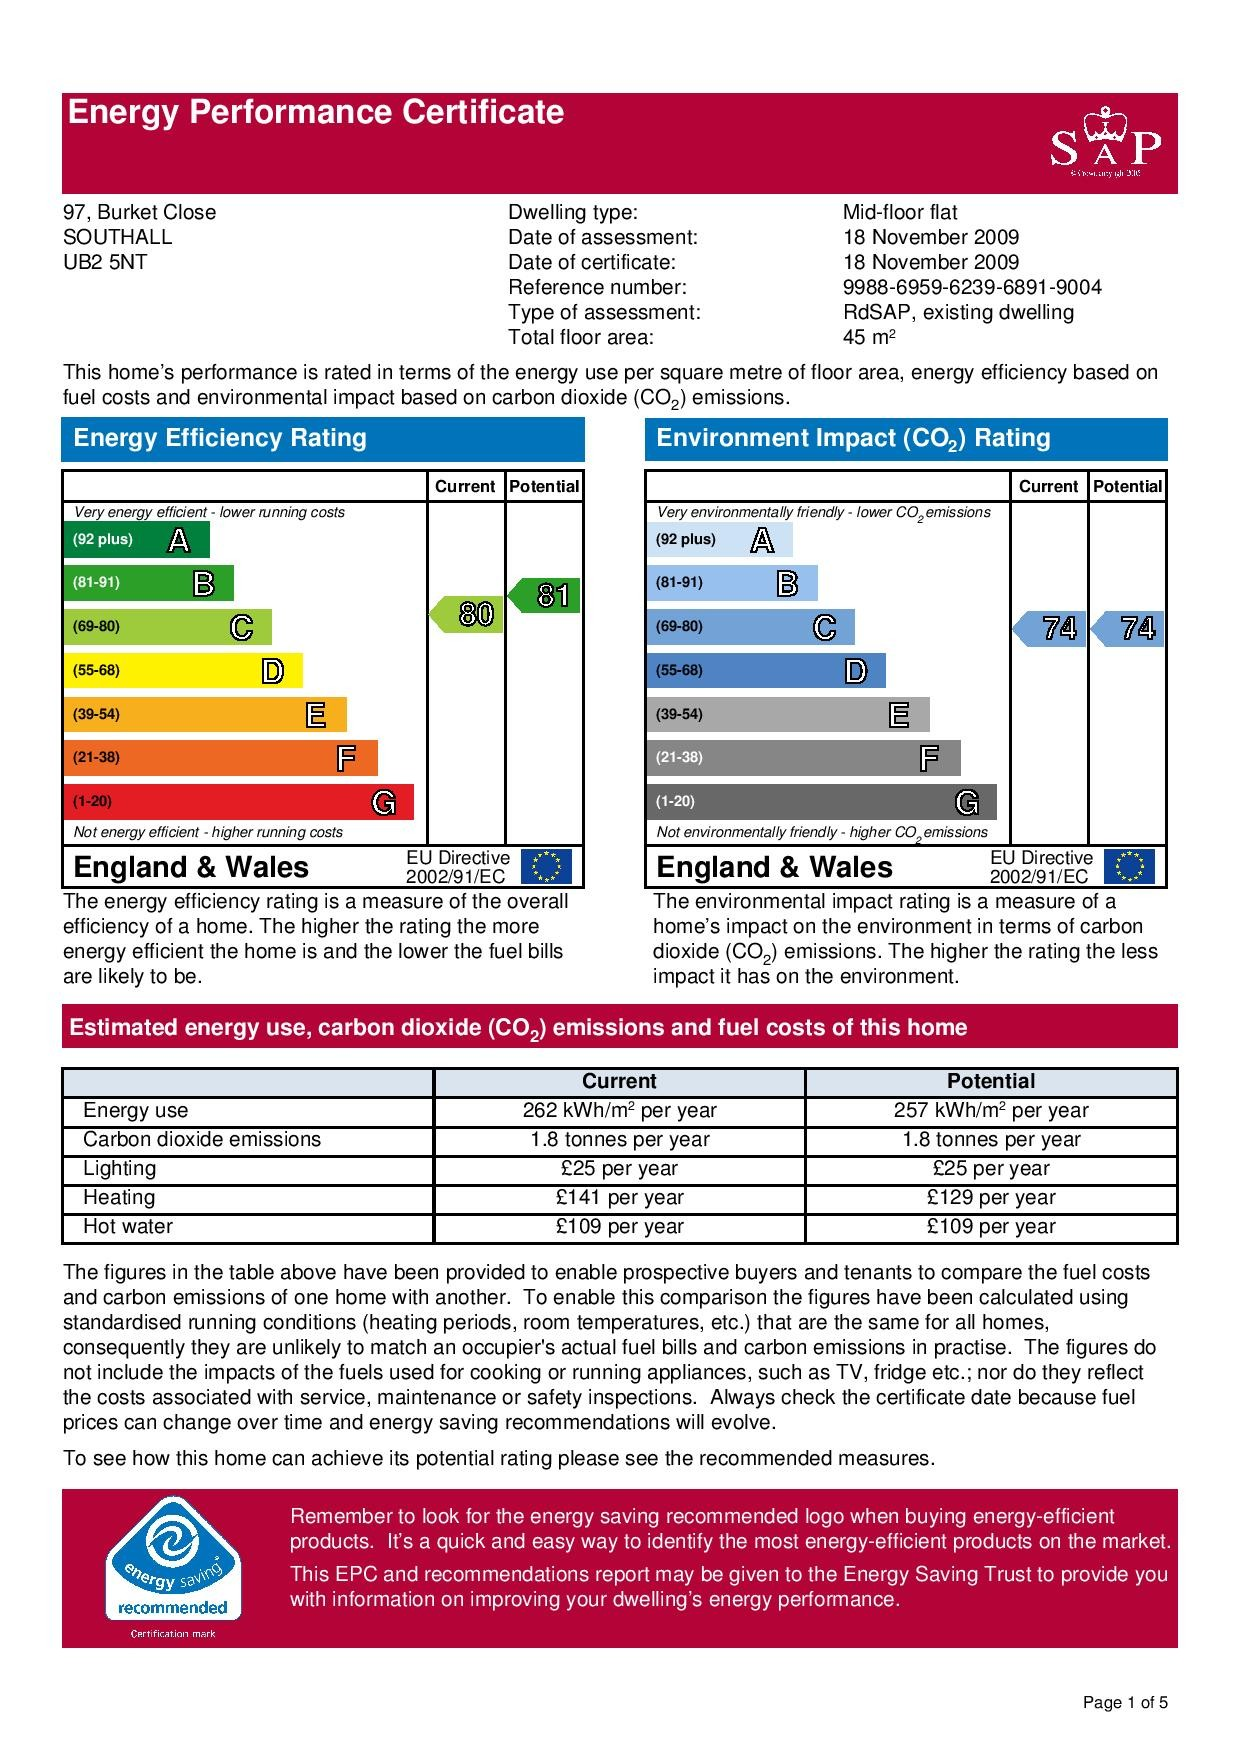 EPC Graph for 97 Burket Close, Norwood Green, Middlesex UB2 5NT